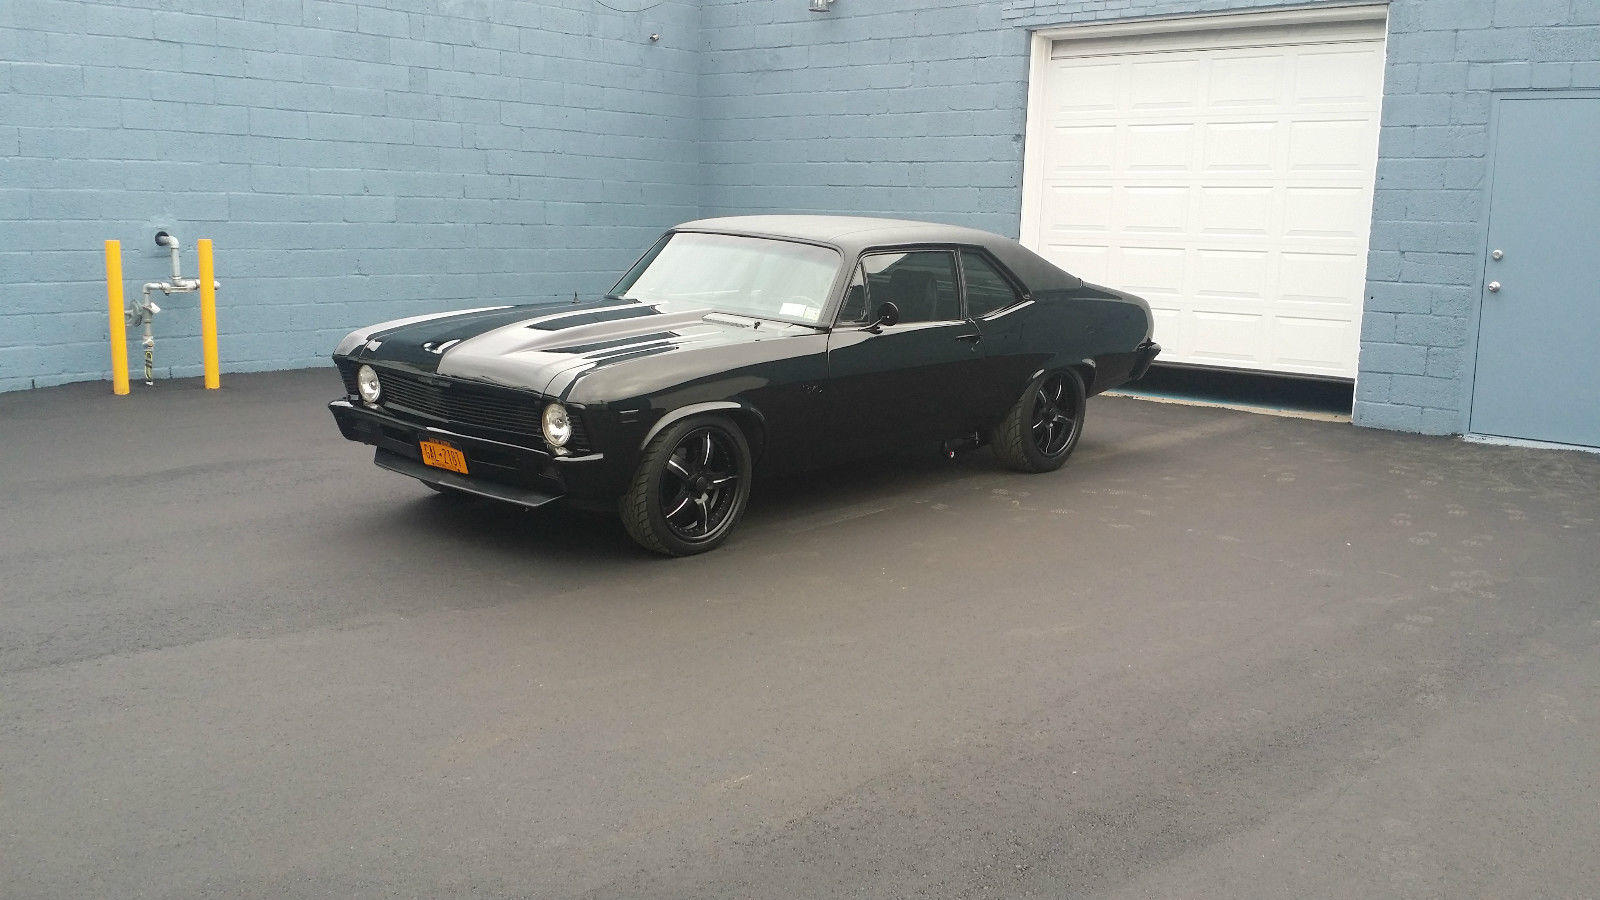 A 1969 Chevy Nova with Murdered out Pro Touring Treatment